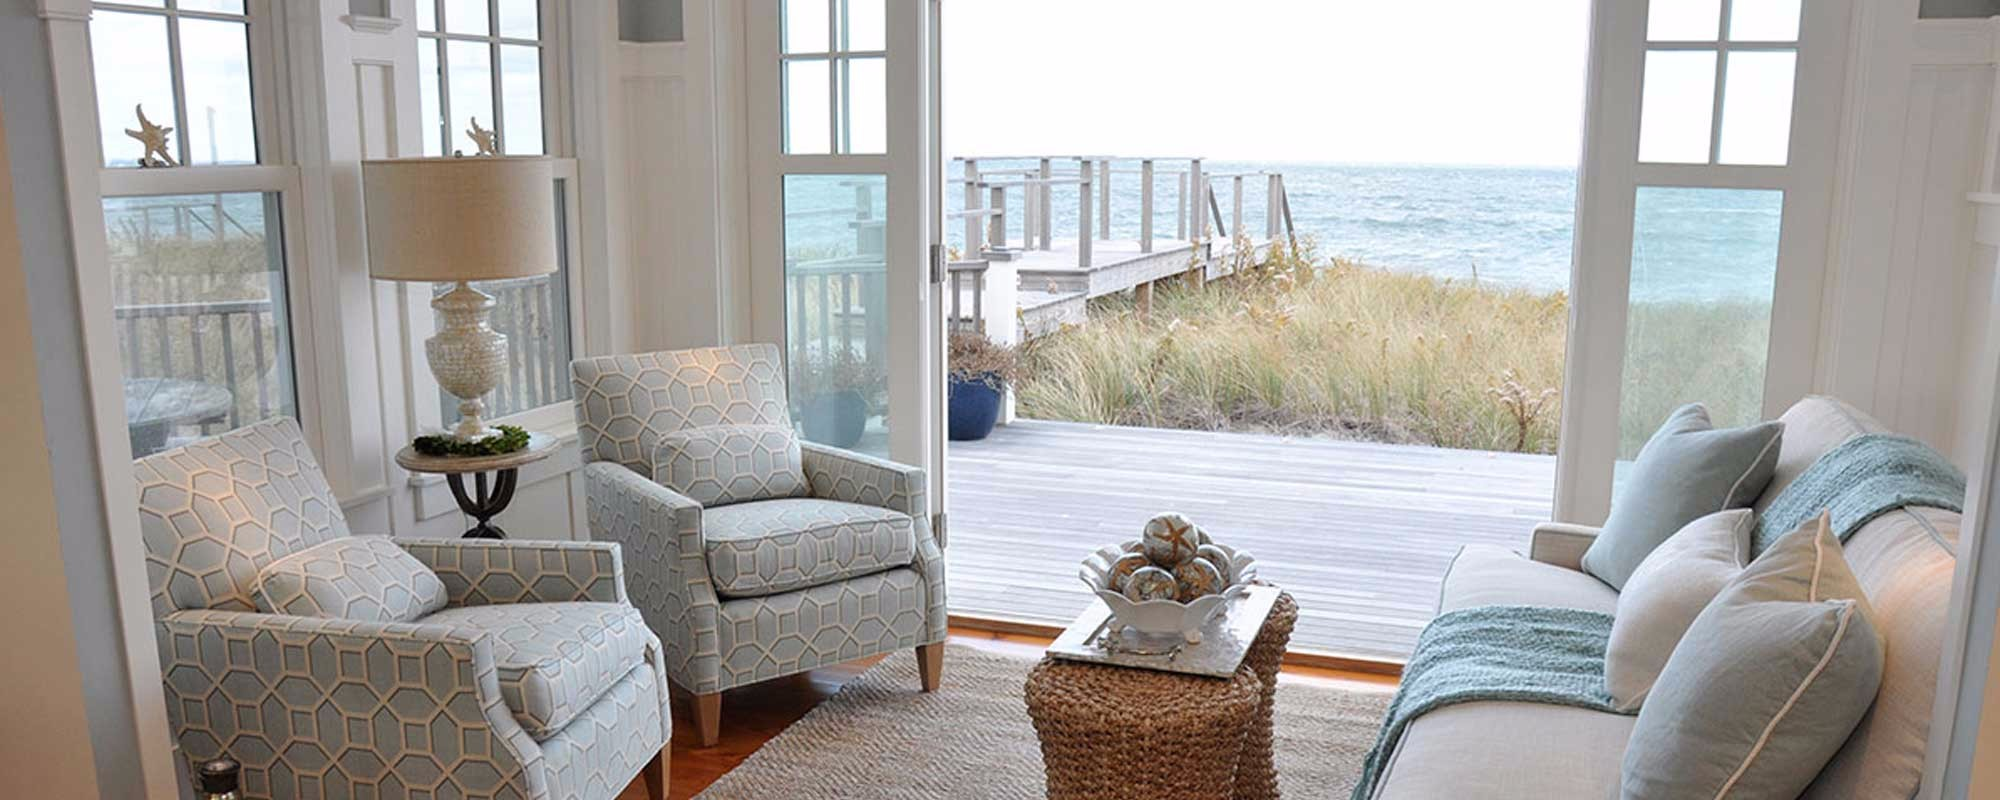 Interior design cape cod ma casabella interiors for House design photos interior design